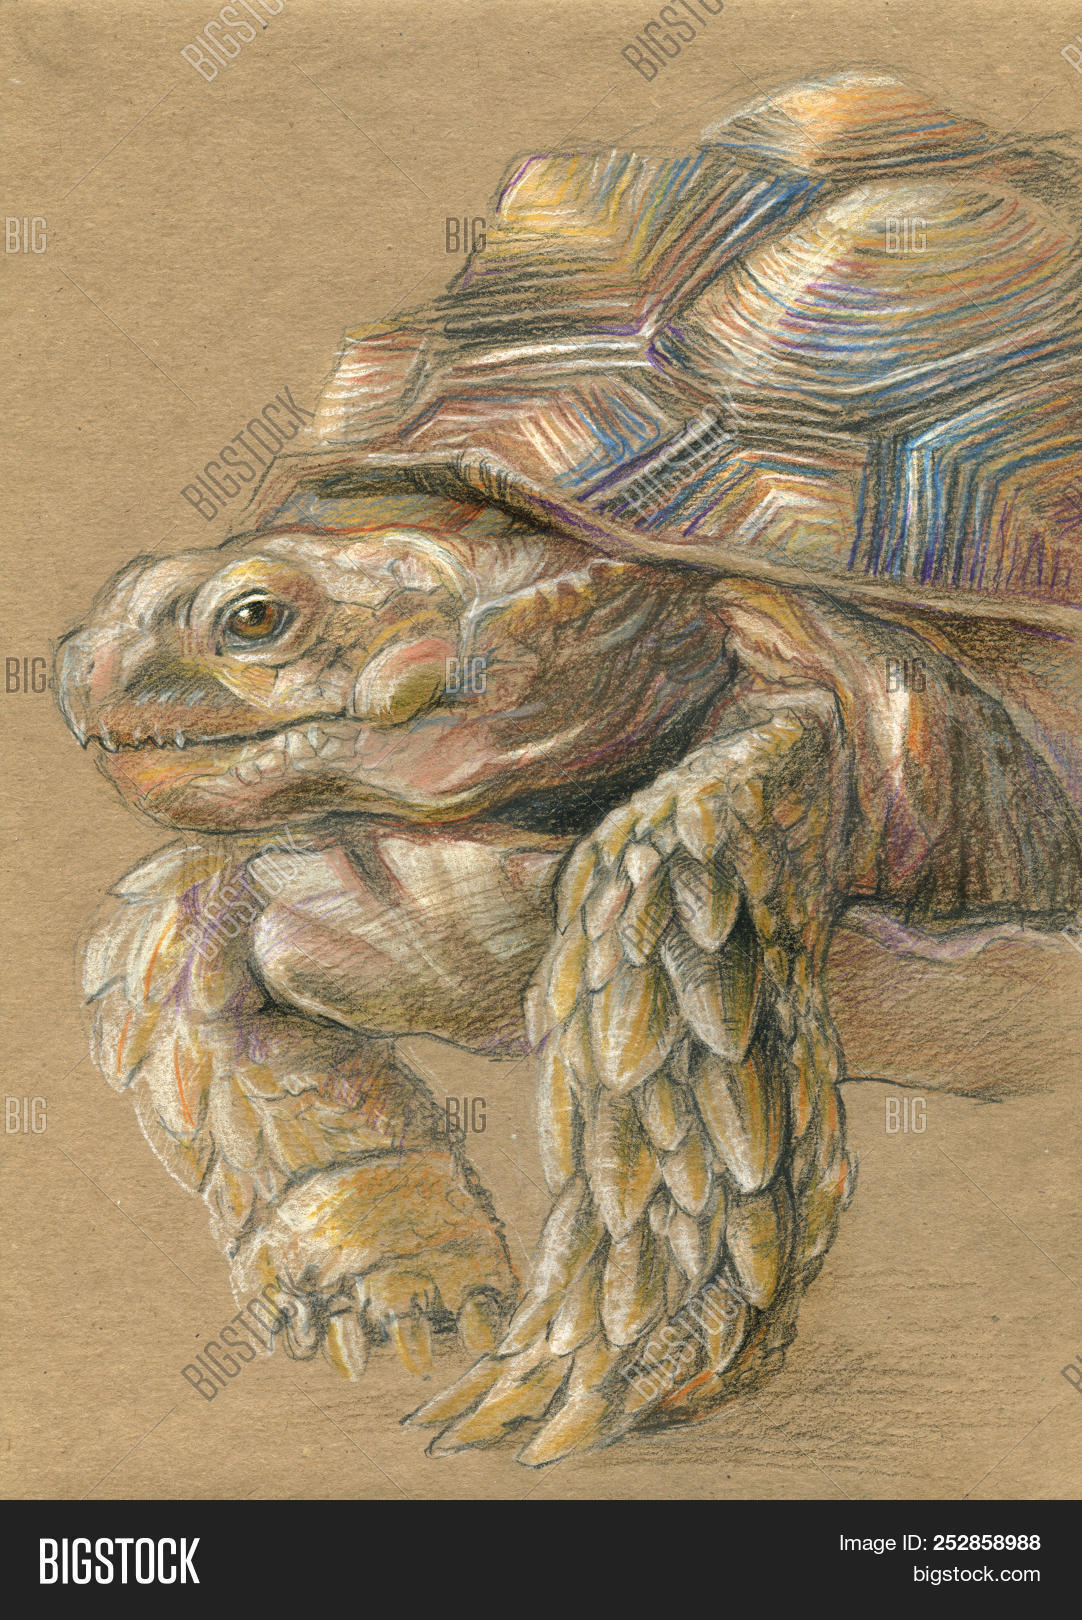 Old wise tortoise image photo free trial bigstock